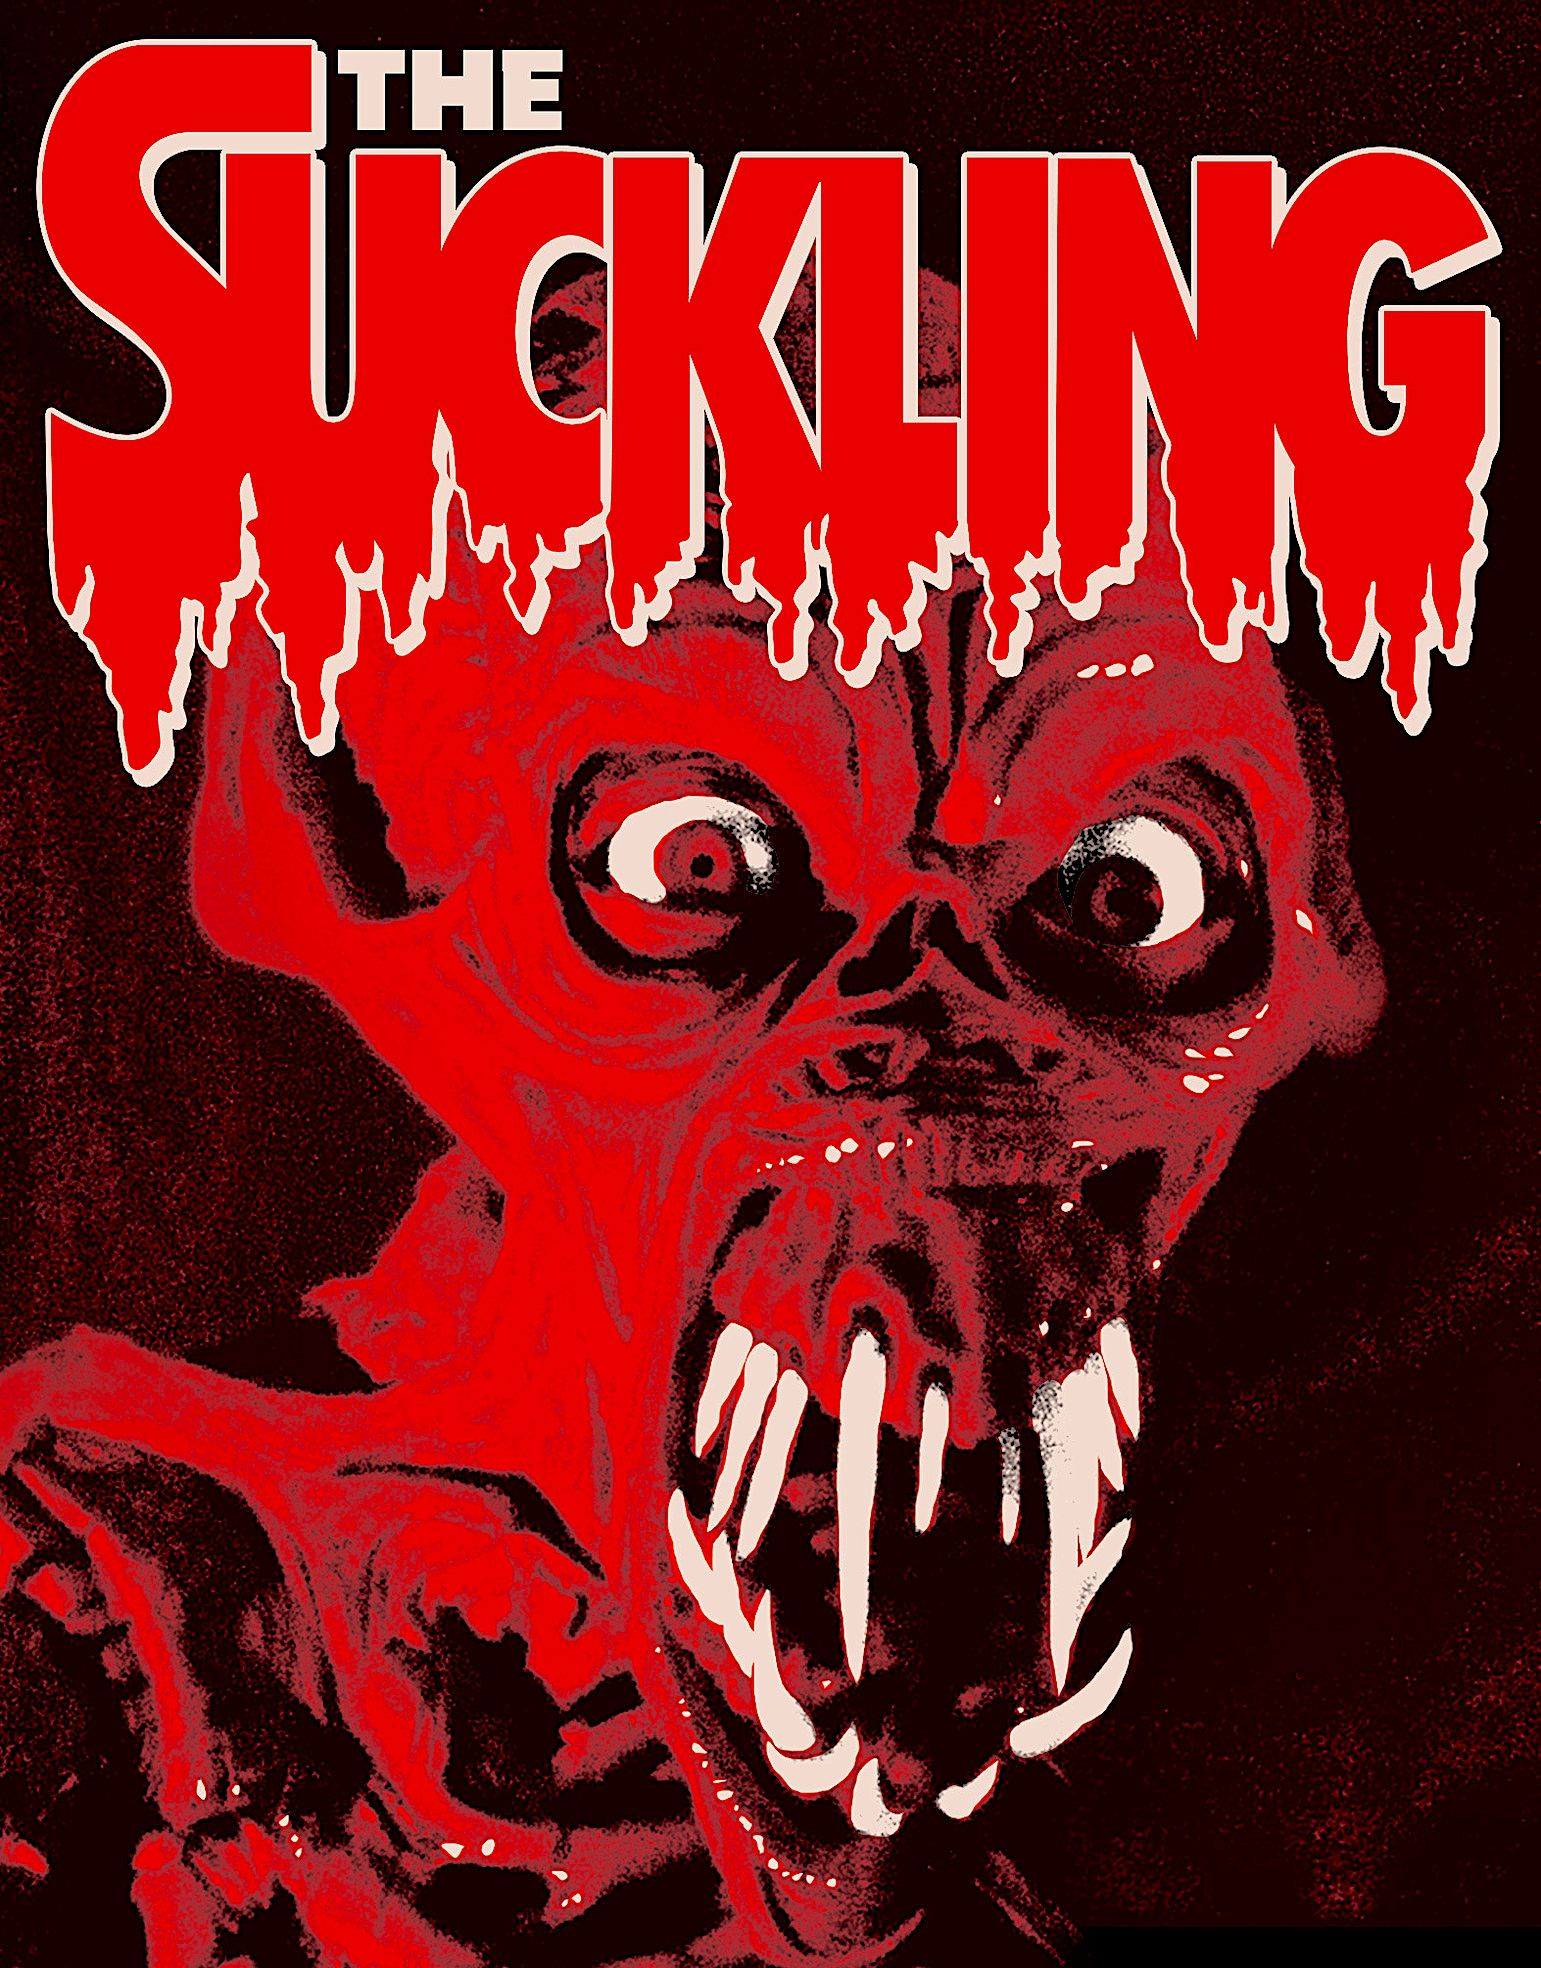 THE SUCKLING (AKA SEWAGE BABY) LIMITED EDITION BLU-RAY SLIPCOVER ...